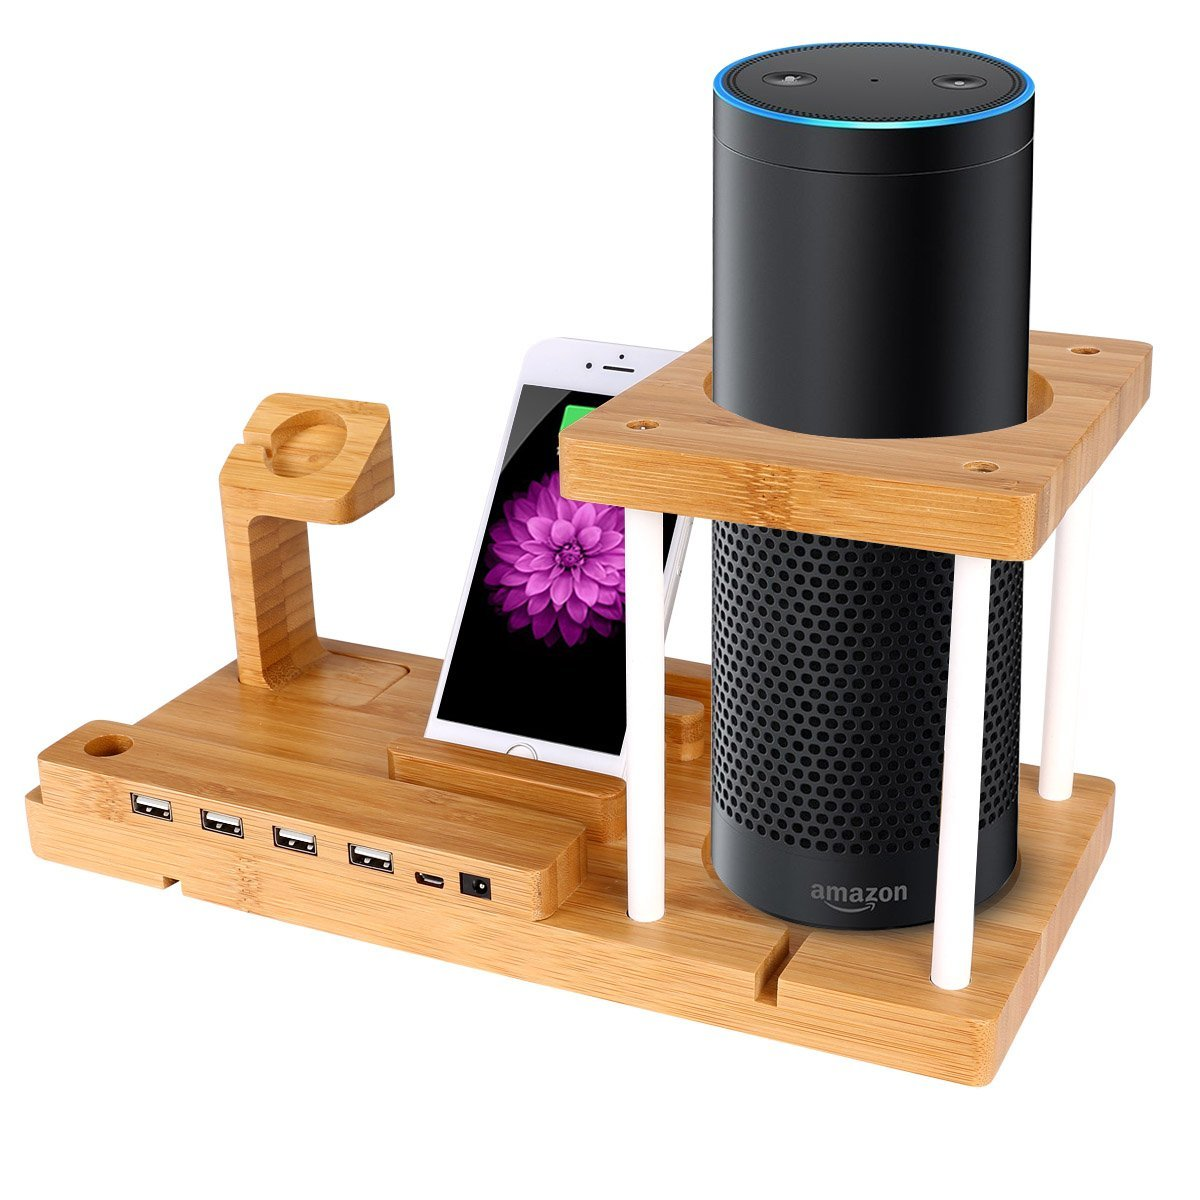 Bamboo Speaker Mounts for Amazon Echo ,Bamboo charging station UE Boom and Charging station with 4-Port USB Charger Cell Phone & Smart Watch Accessories Cell Phone Speaker Mounts